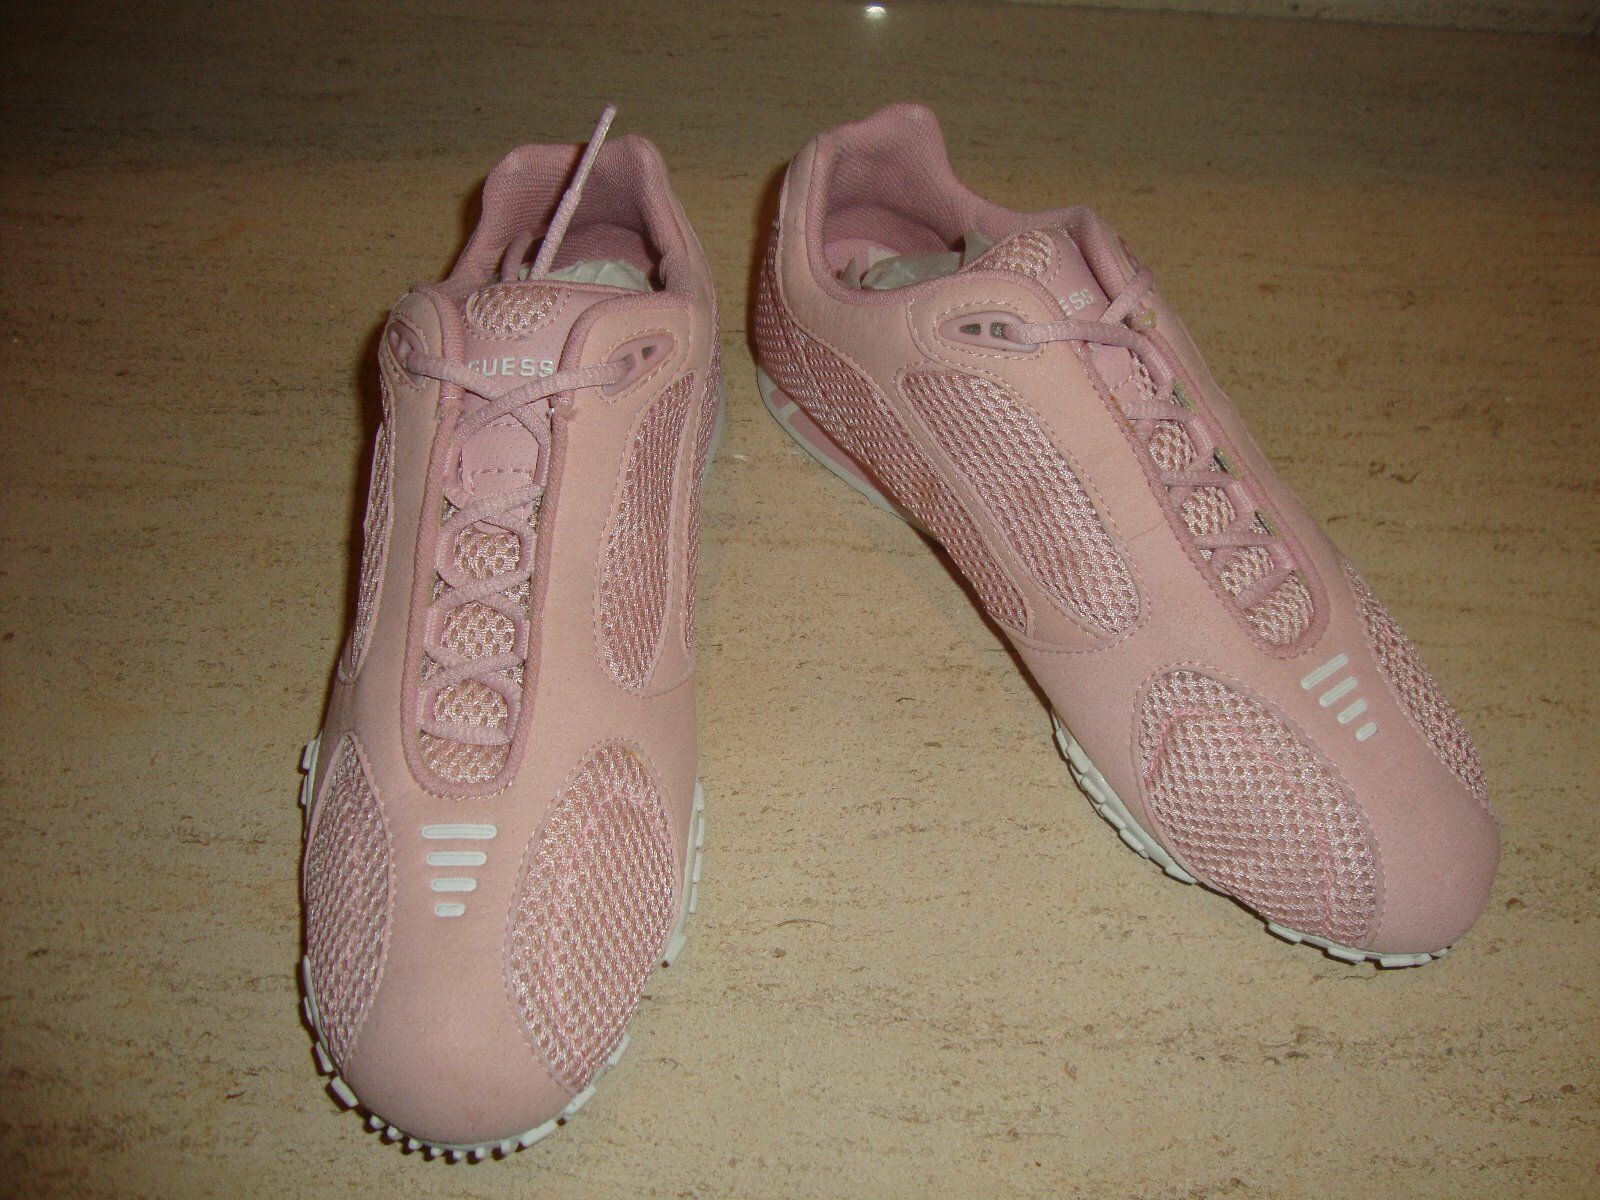 STYLISH PINK LEATHER & MESH SNEAKERS BY GUESS SIZE 7 (NWOB)